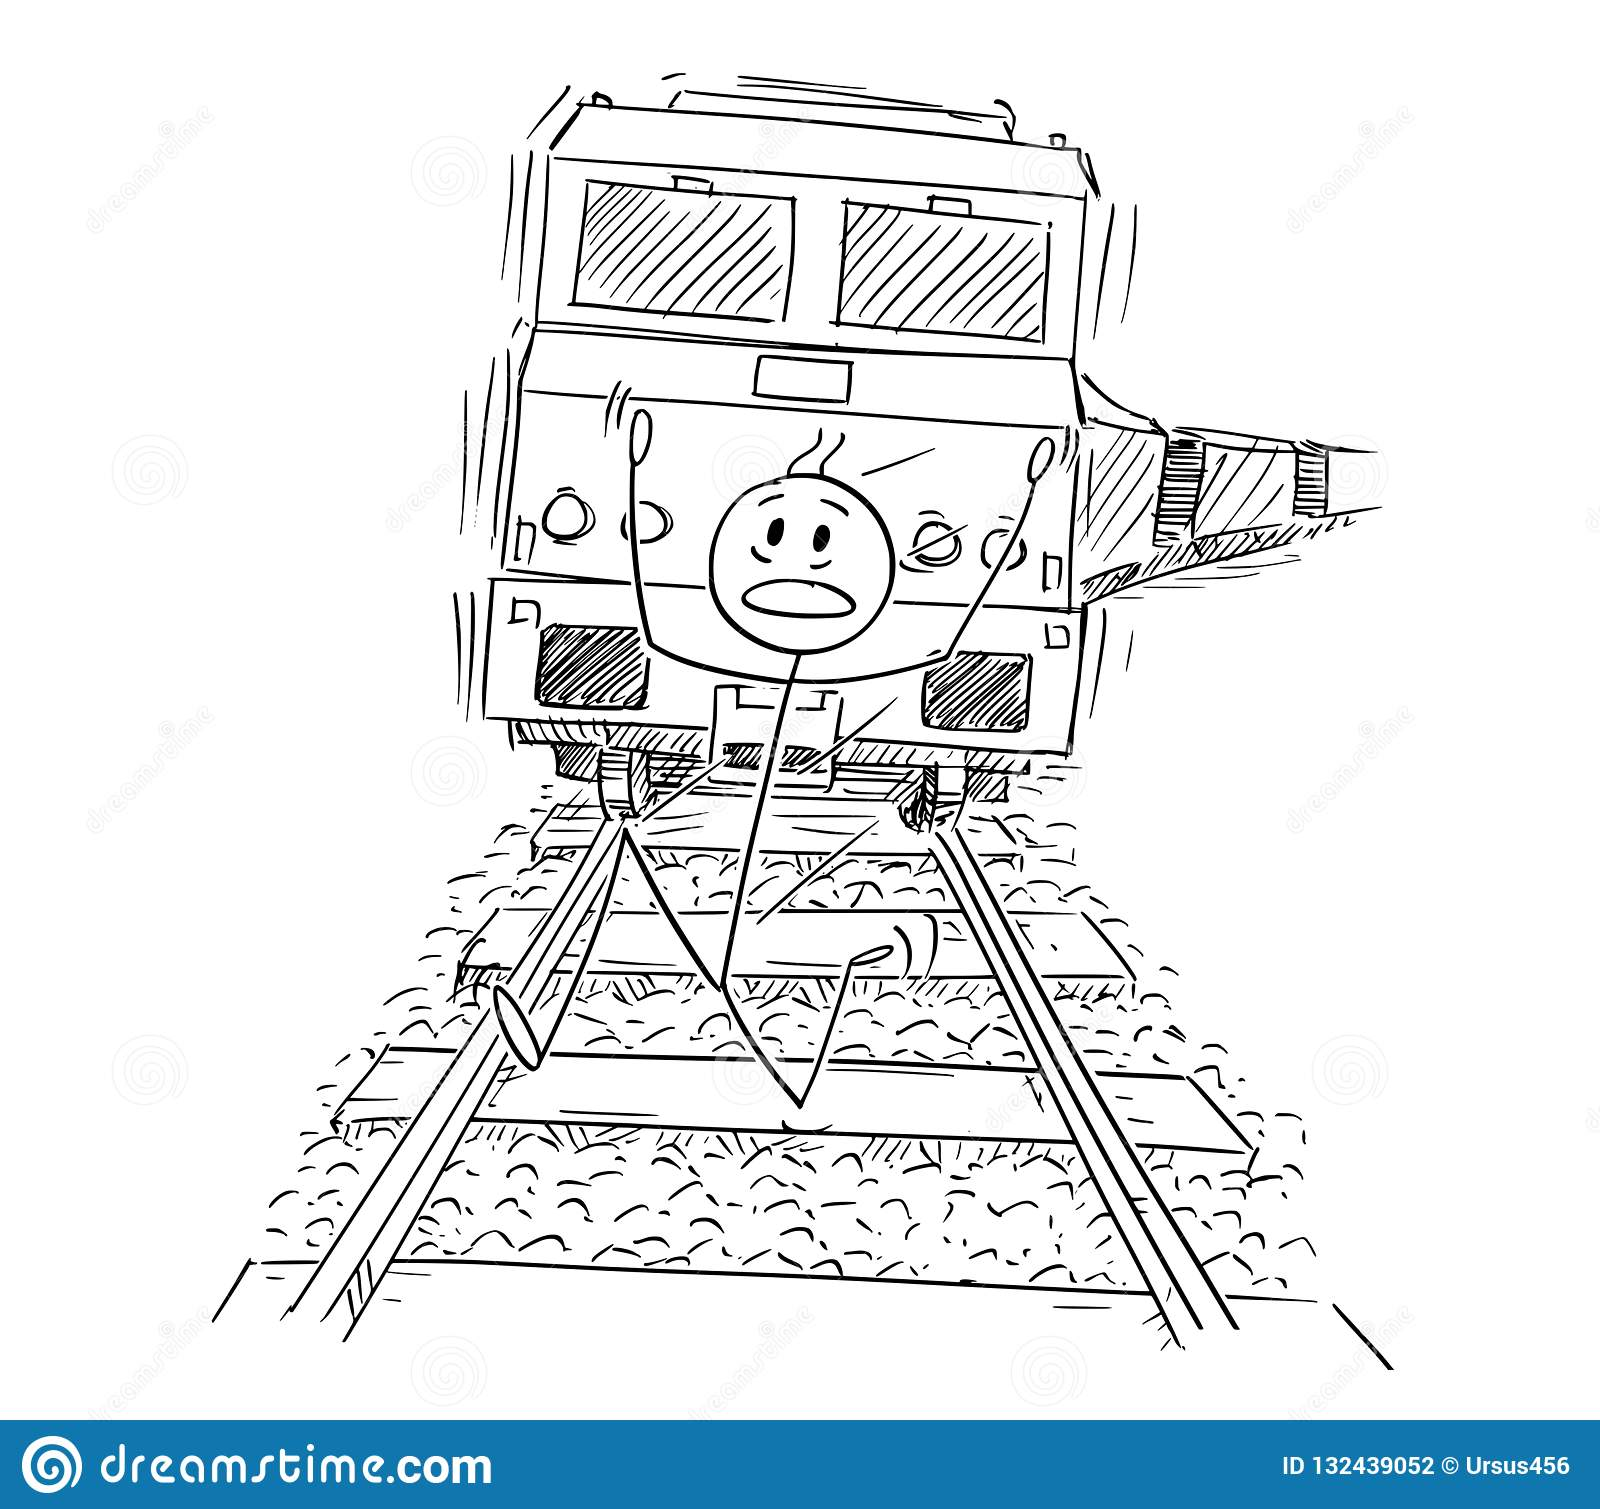 Cartoon Of Frightened Man Running On Tracks Away From The Train